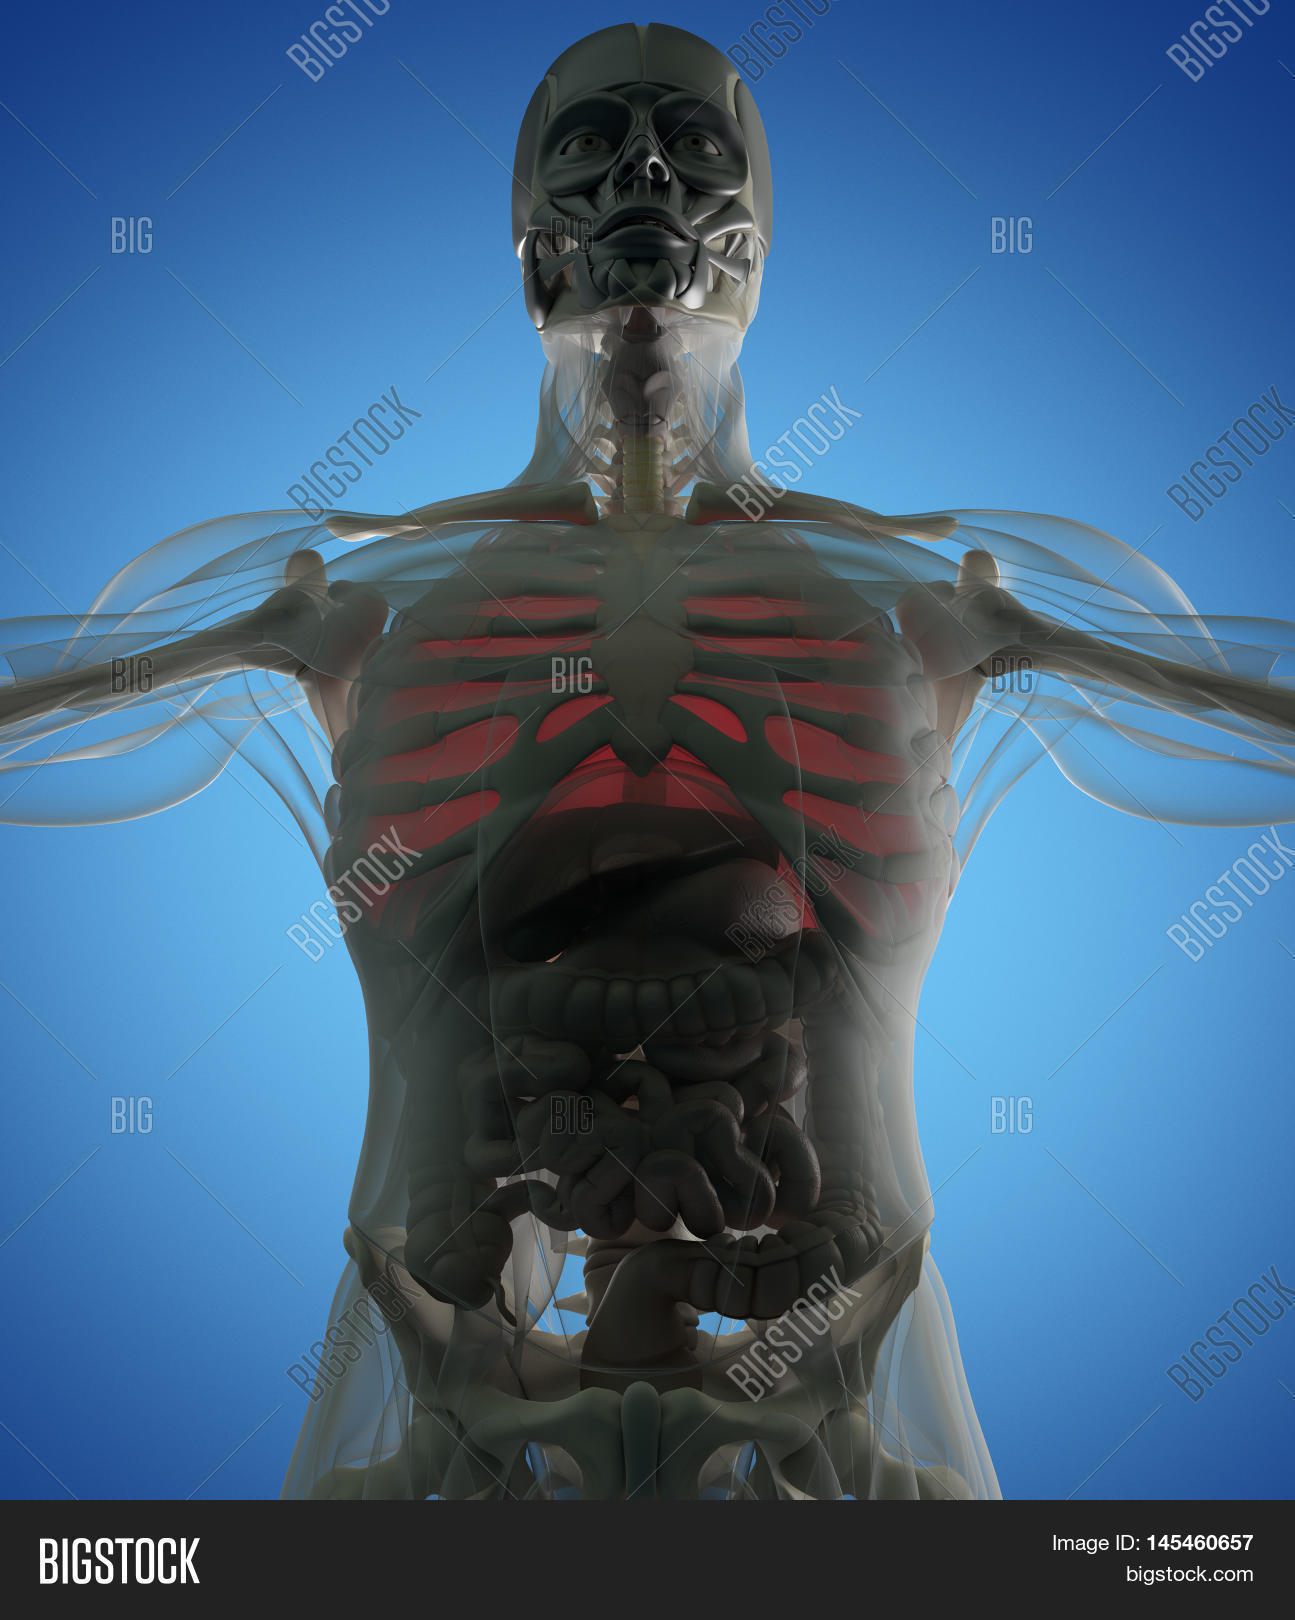 Human Anatomy Lungs Image Photo Free Trial Bigstock